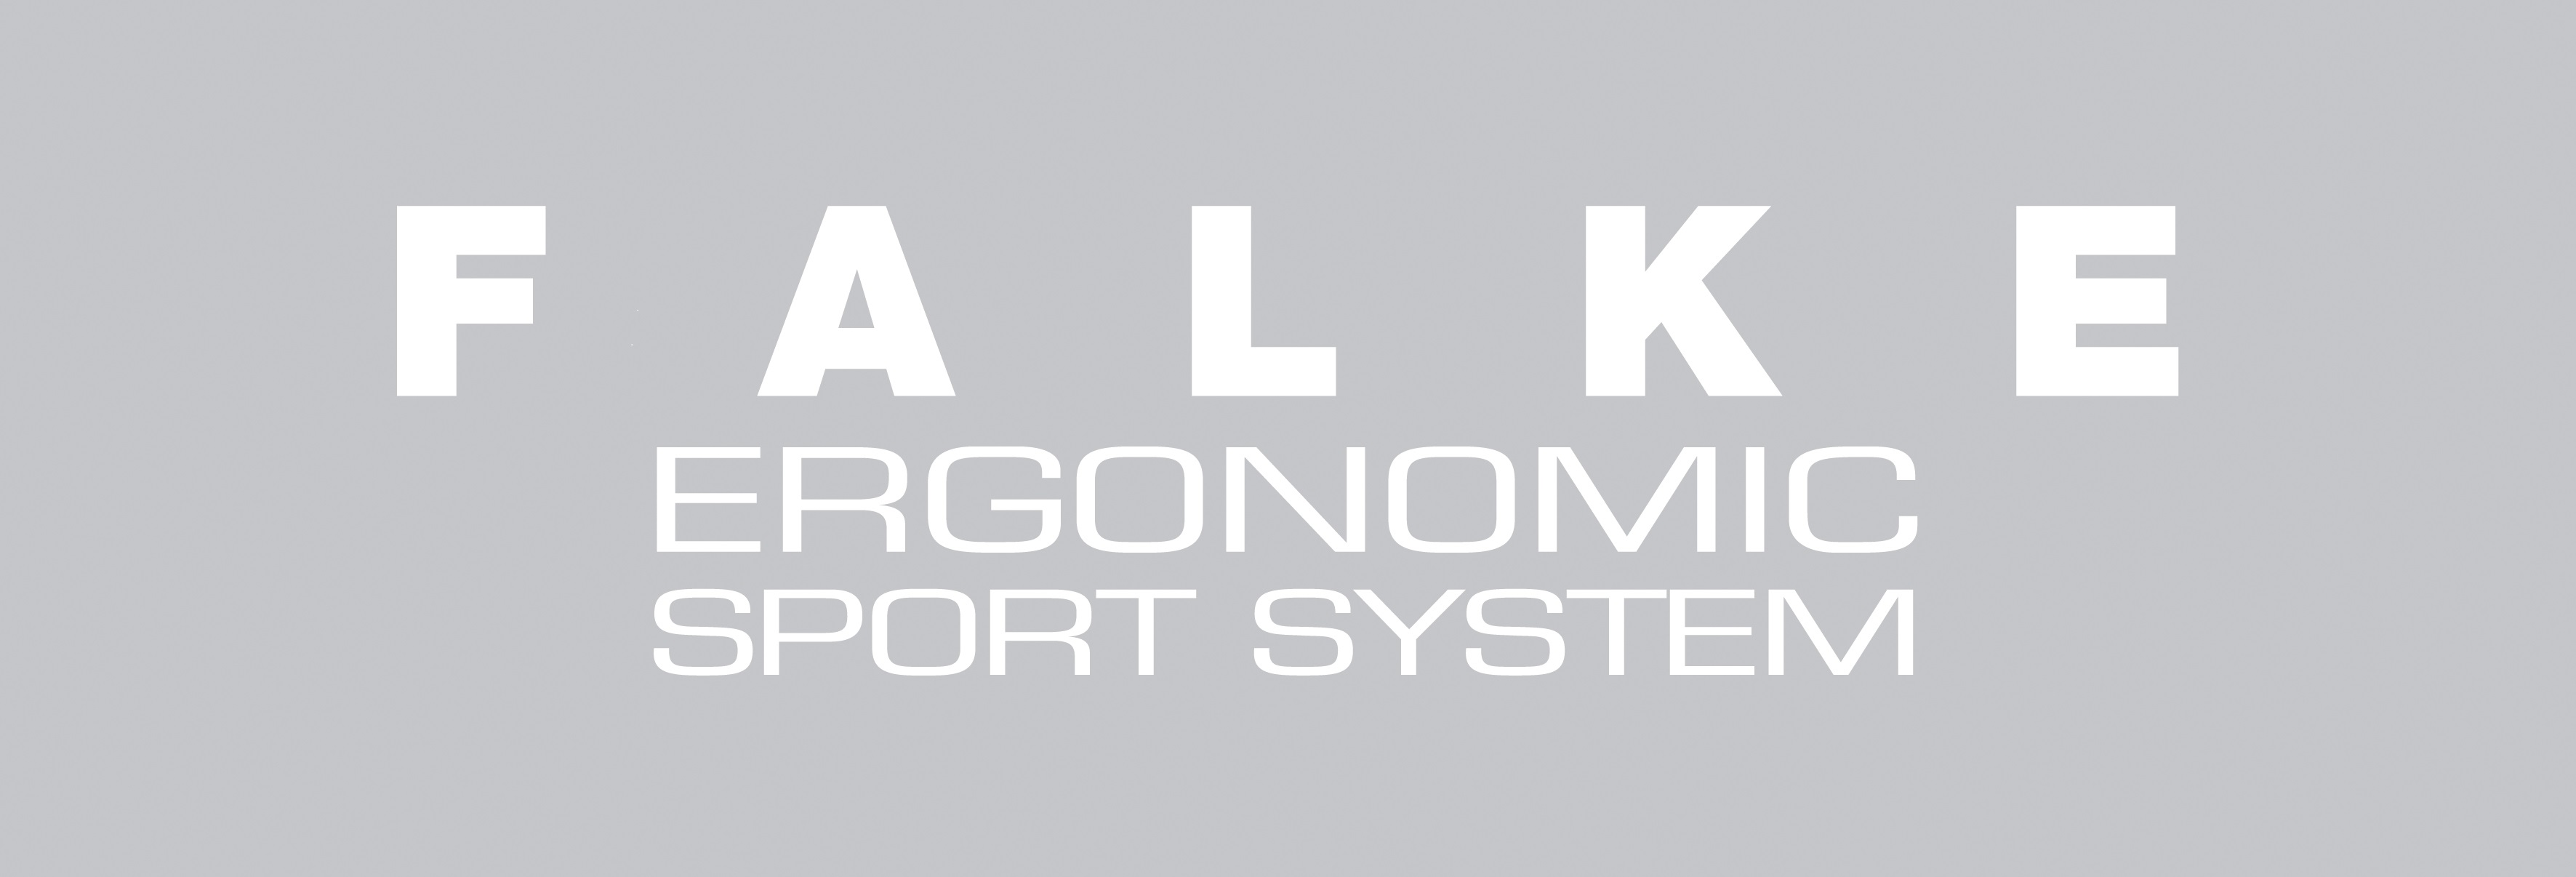 Falke - ESS (Ergonomic Support System)